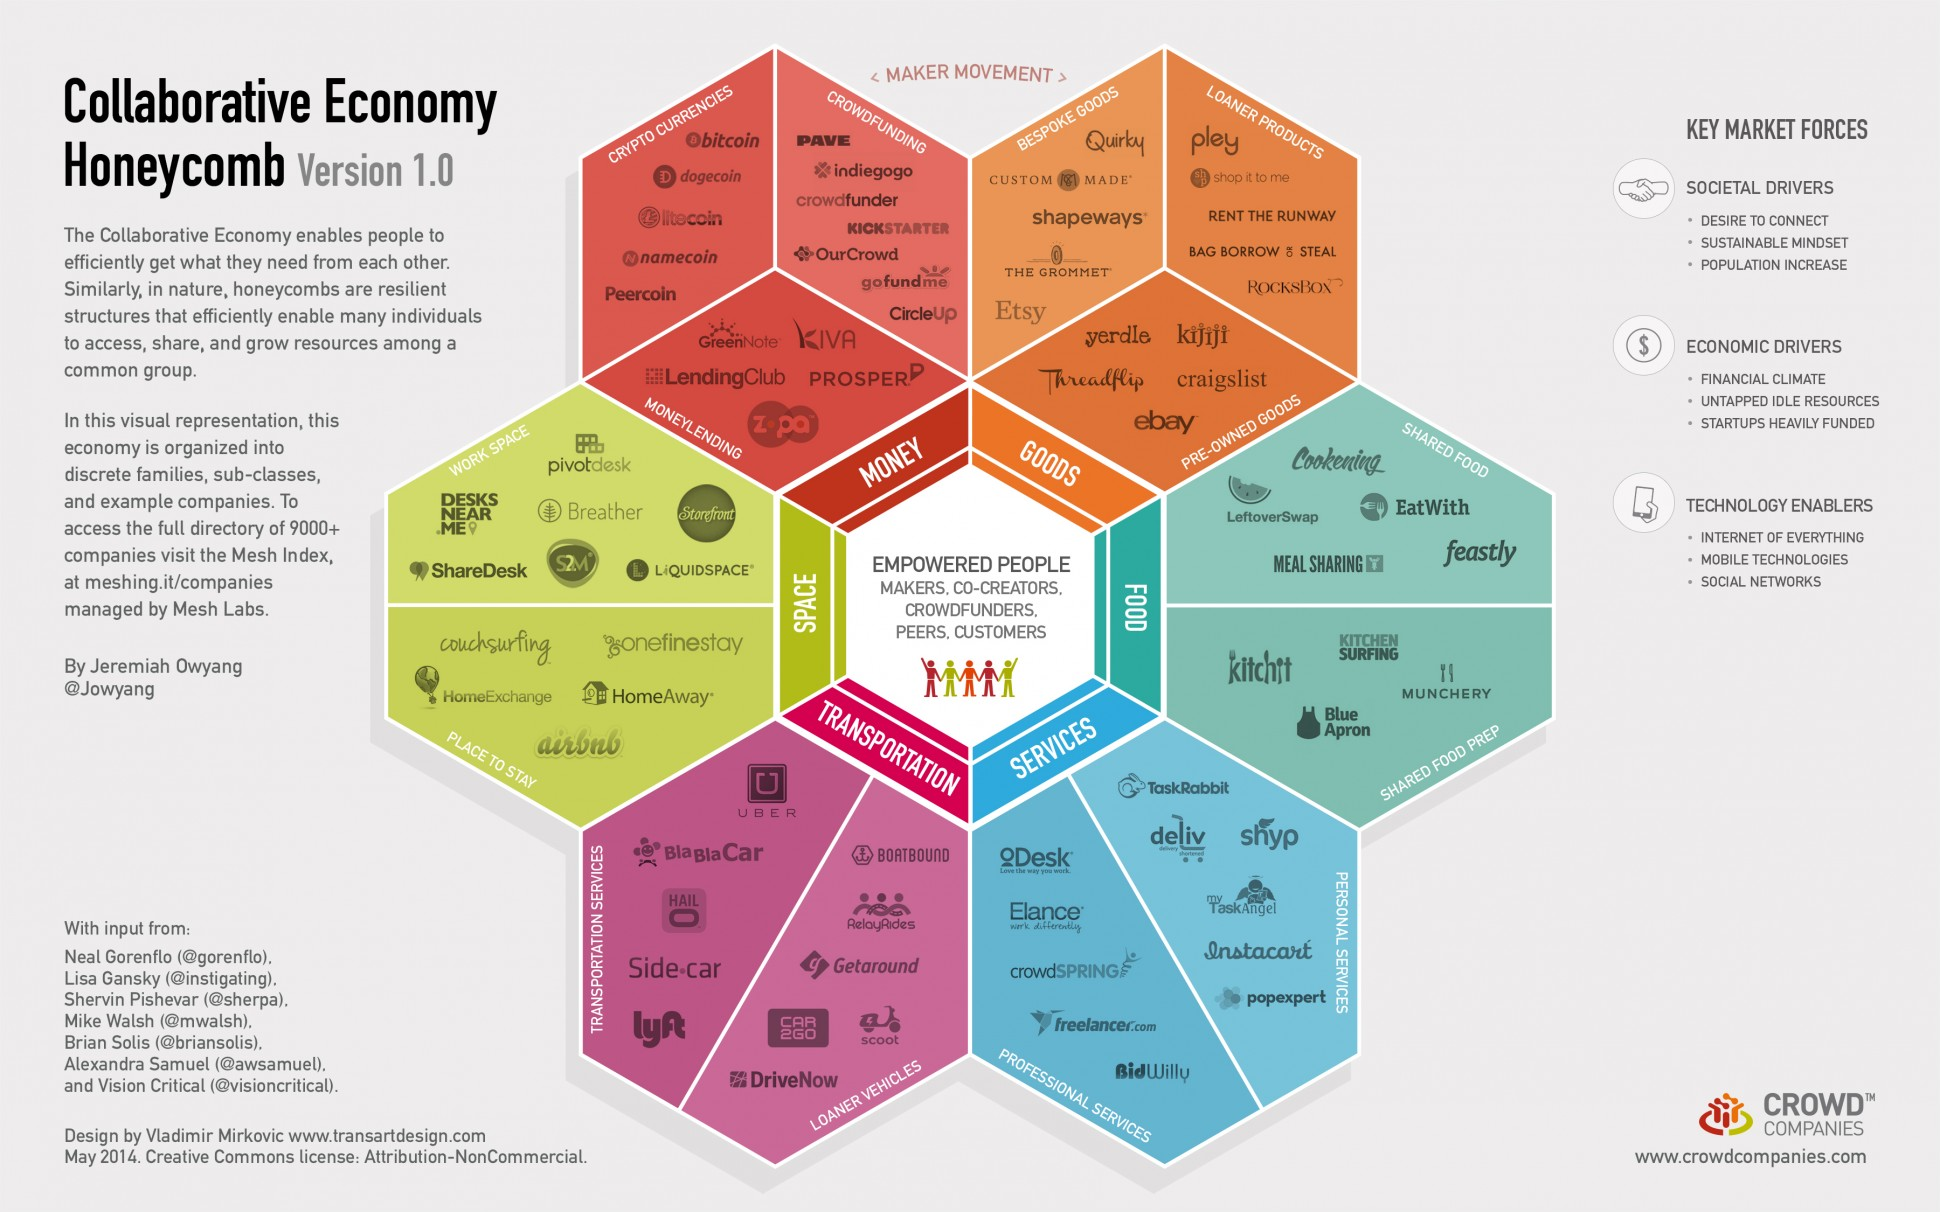 The Collaborative Economy 'honeycombe' by Crowdcompanies . Designed by Vladimir Mirkovic